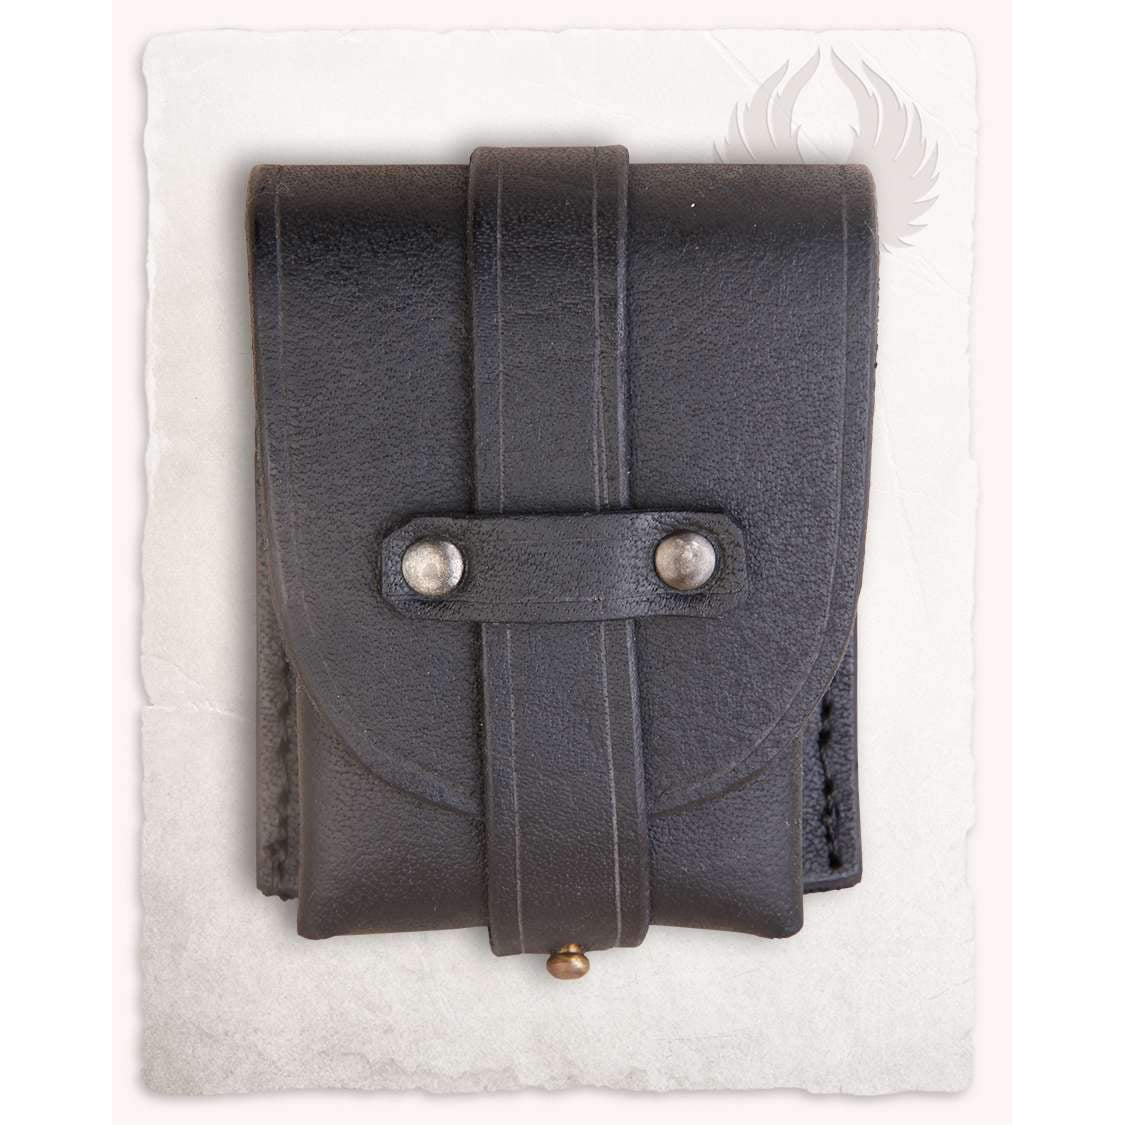 Gerard belt bag small